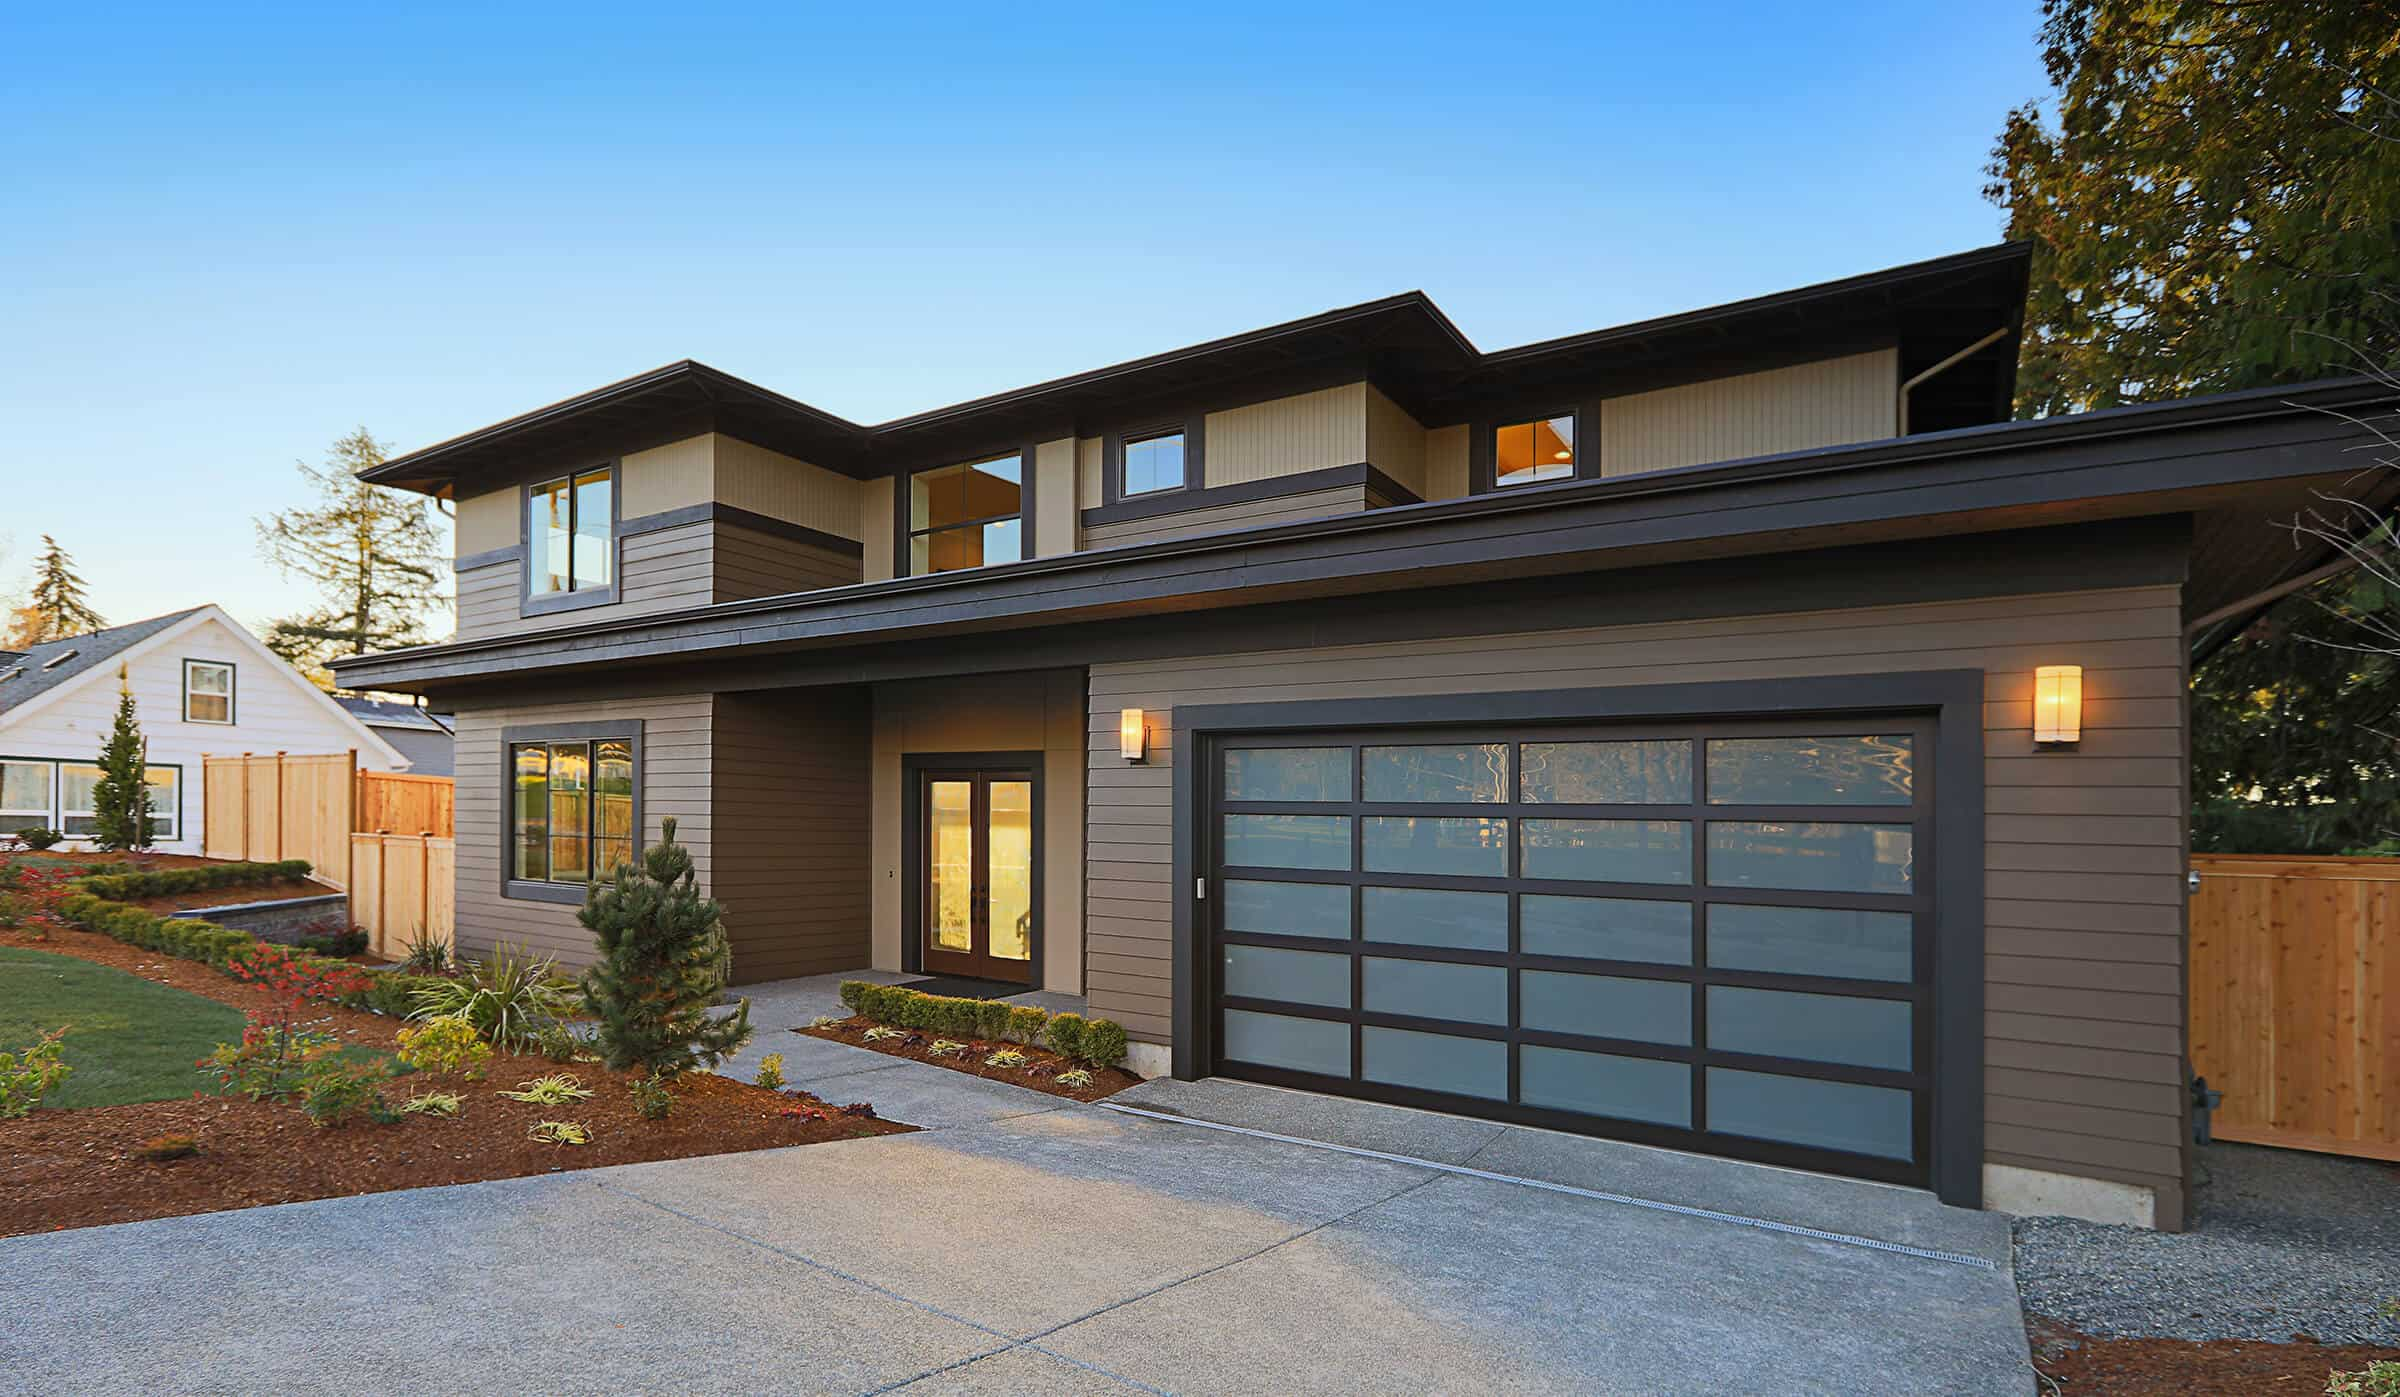 Modern Home with Low Slope Roof and Dark Trim